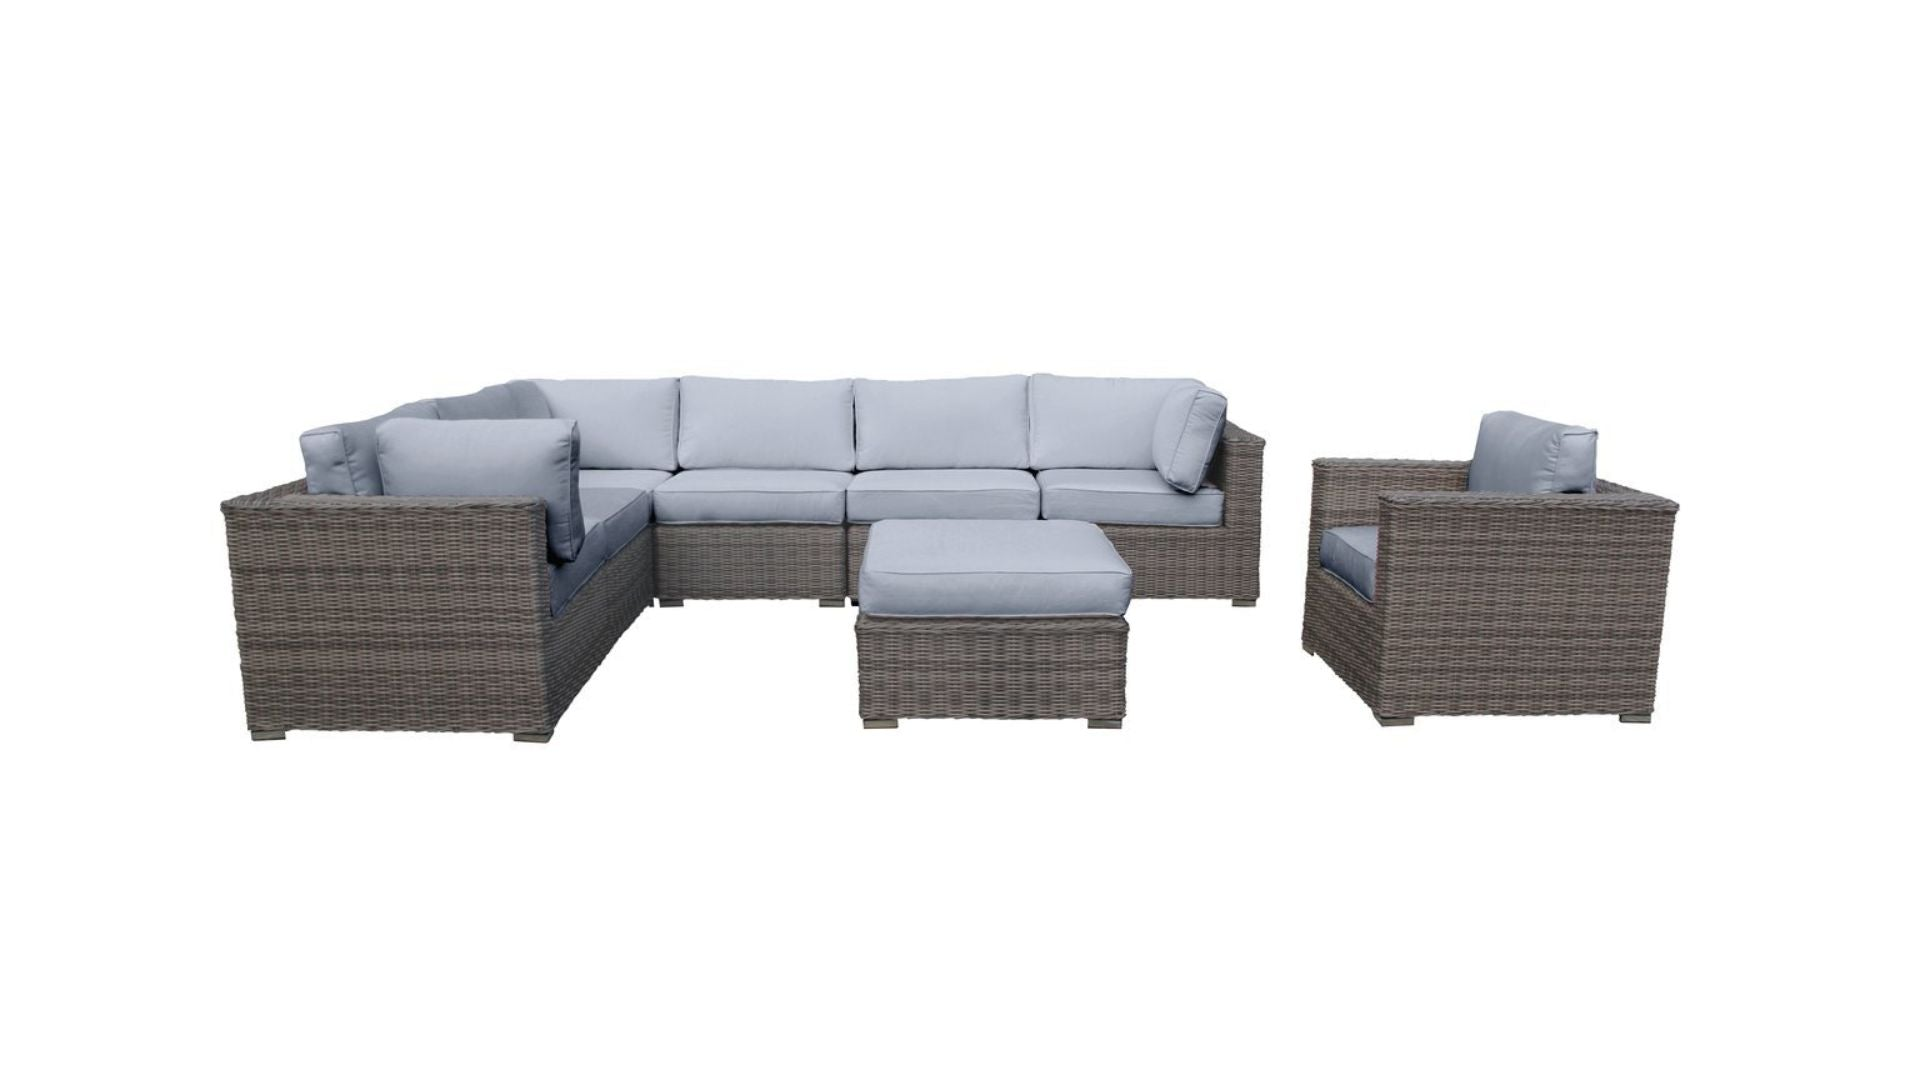 The Rockies - 8pc Sunbrella® Outdoor Patio Furniture - Cozy Corner Patios